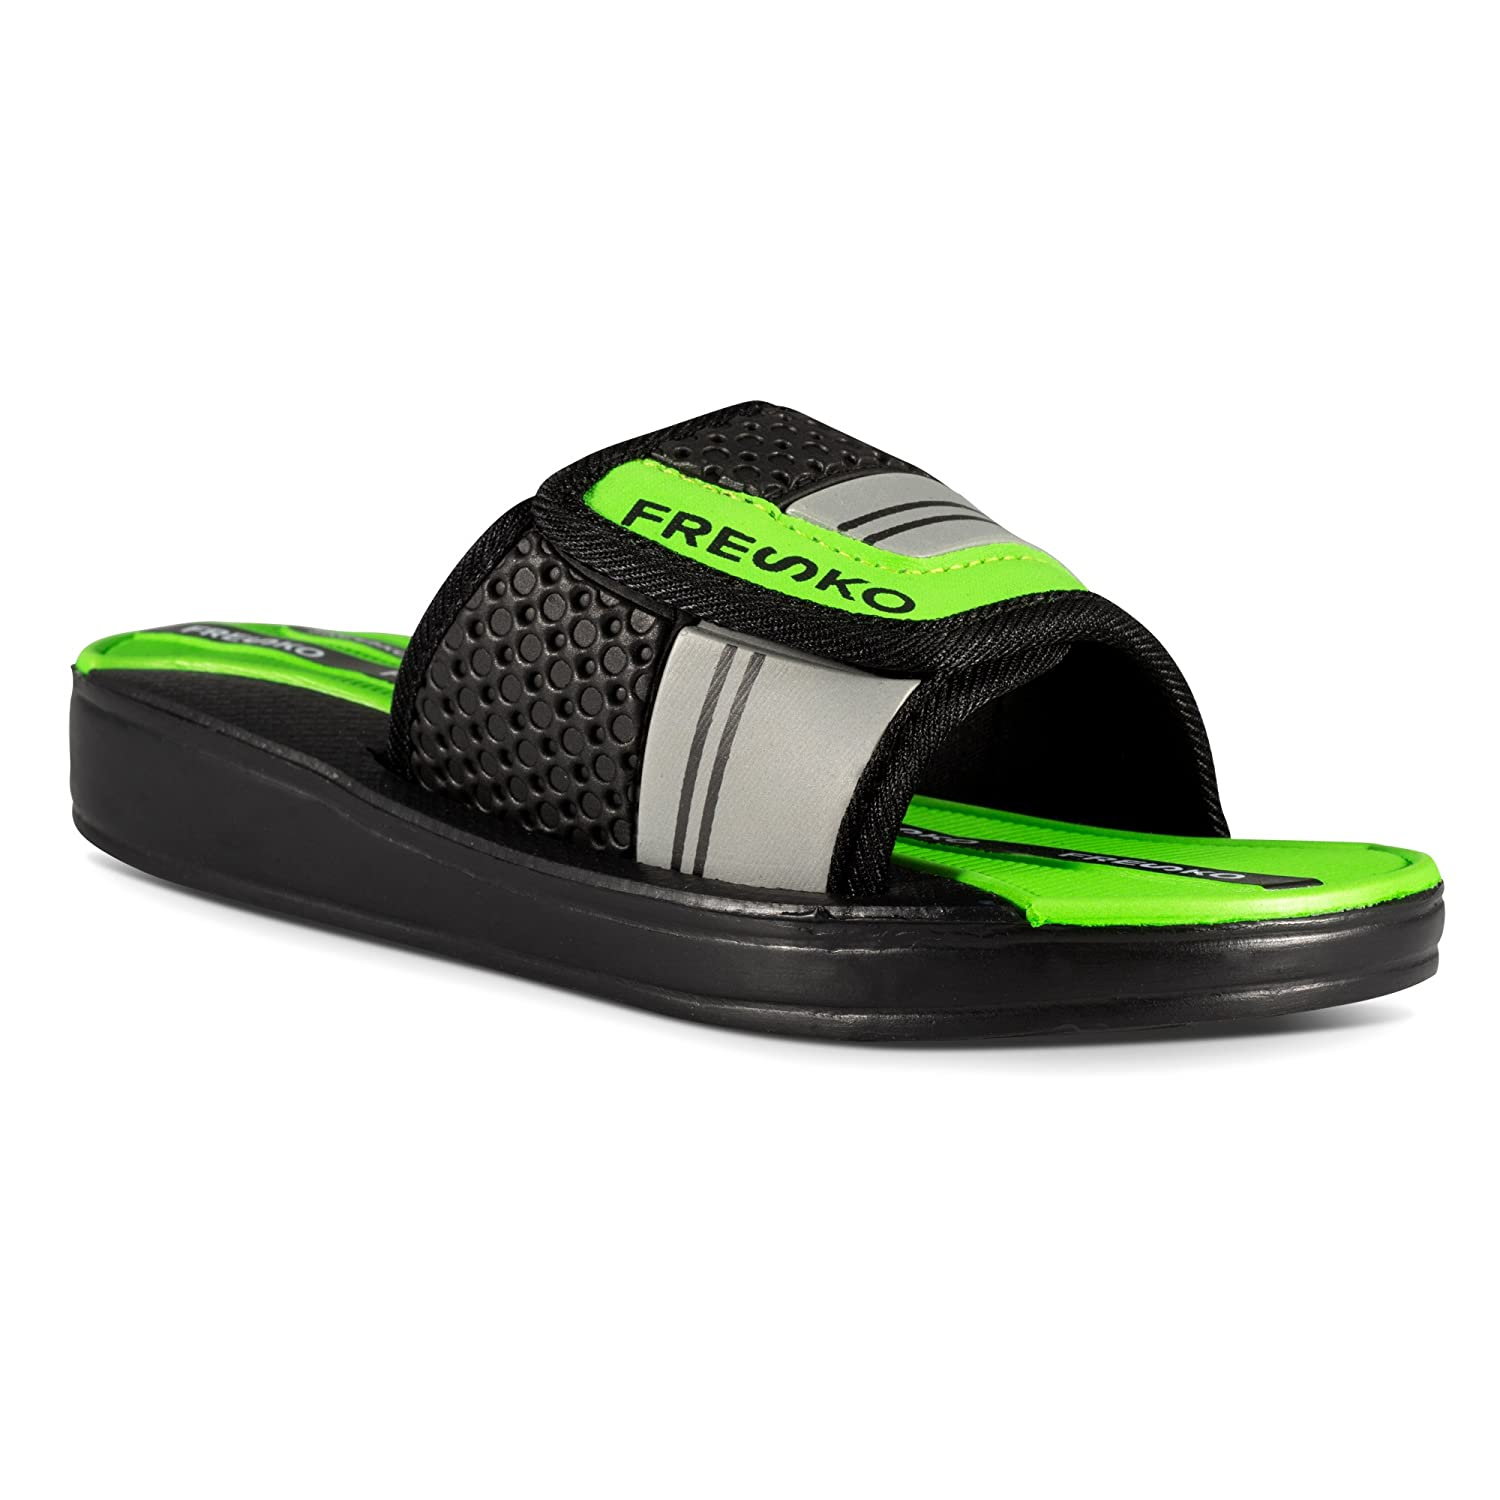 905e10bf68 Amazon.com | Fresko Shoes Slides Sandals for Boys - Hook and Loop Closure,  Pool, Beach Water Shoe | Sandals